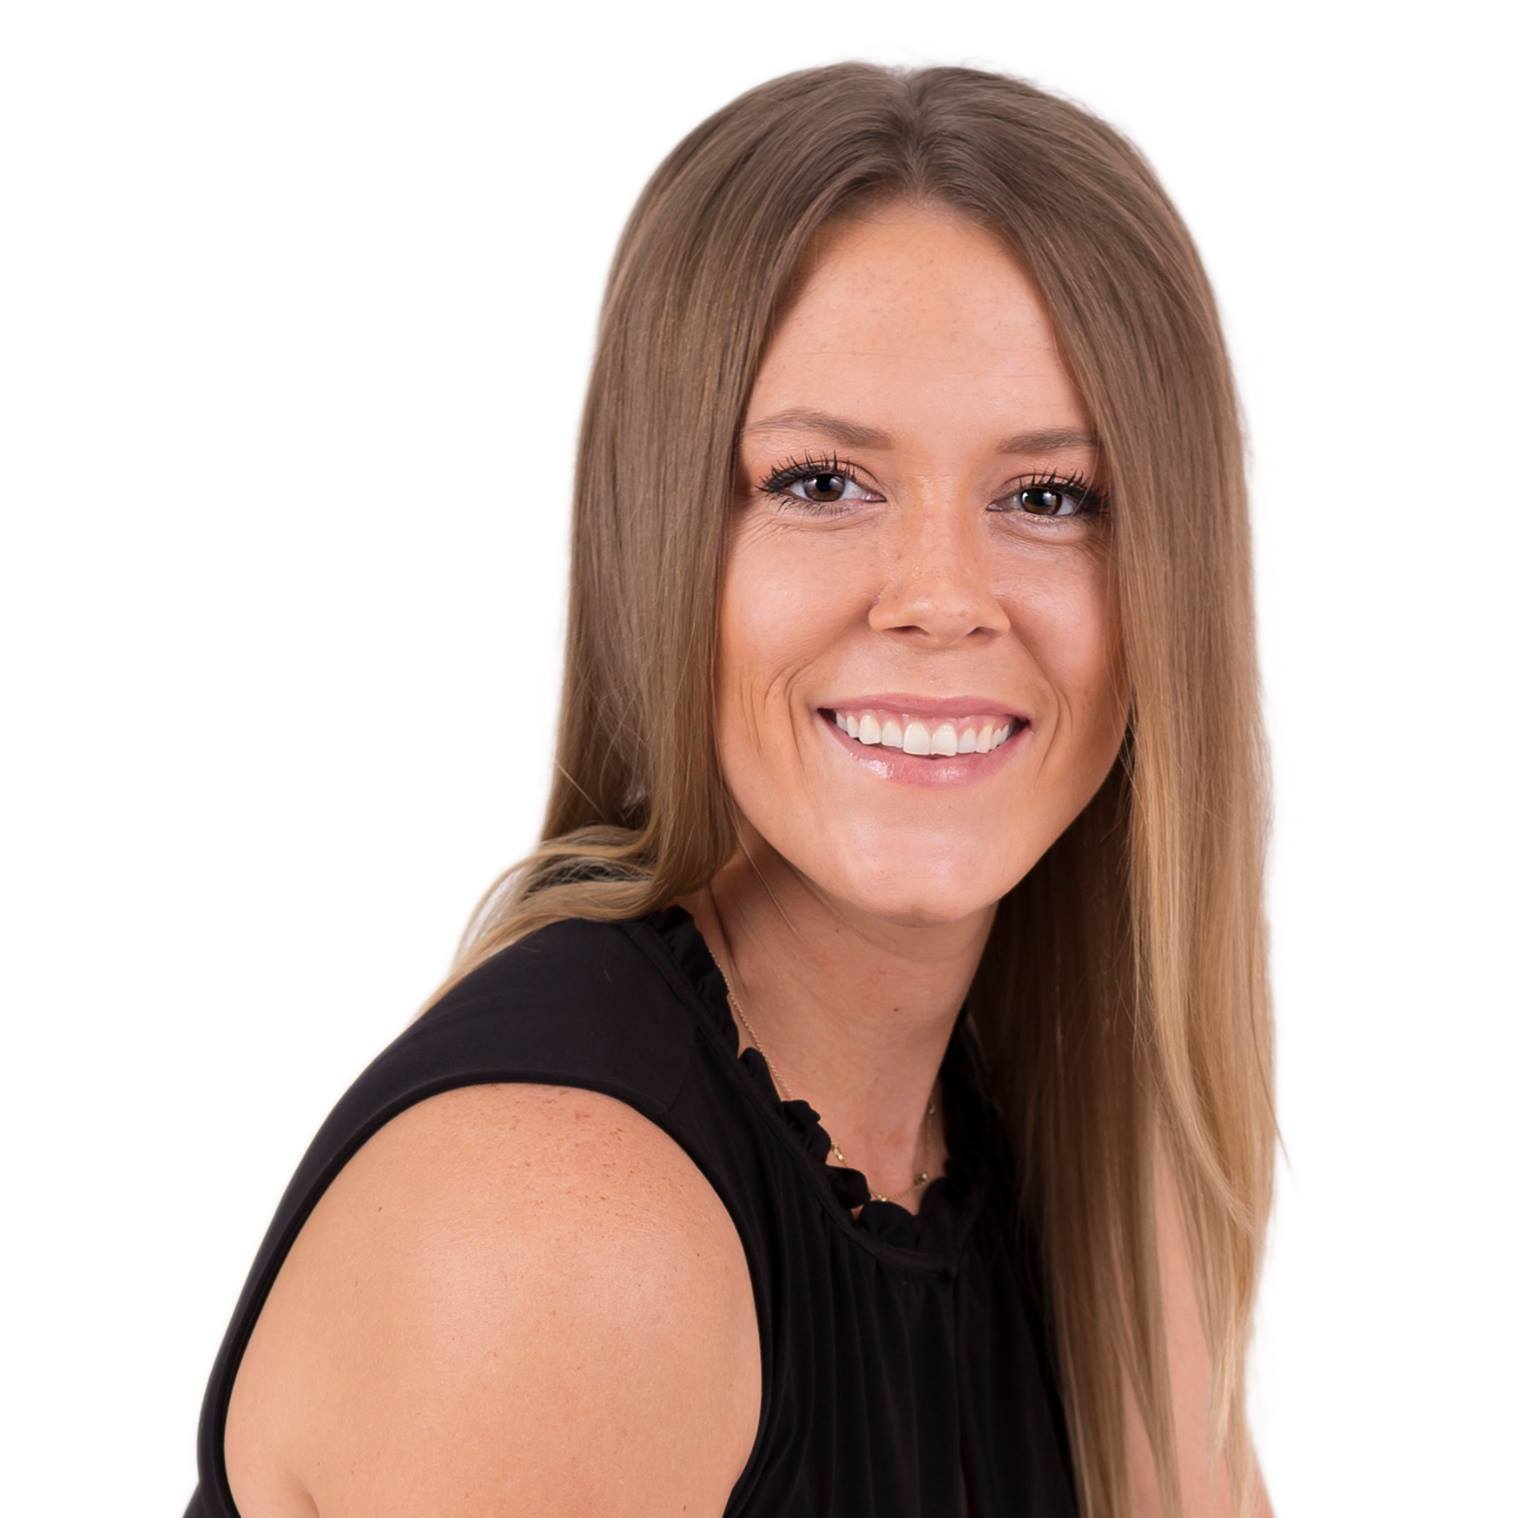 """Raegan Perkey,F.C. Tucker Malcolm & Schlueter - """"I like HomeSnap because it is powered by the MLS and has agent stat information easily accessible for all consumers to view. It's very easy for my clients to jump on and search for homes and send me 'more info requests.' Not only is it great for my clientele, but it makes scheduling showings through our MLS Showingdesk application very easy. The site is powered by the MLS, therefore it is very accurate, updated on time, allows the listing agents to be marketed for their own listings, and overall a great choice over some of the other websites buyers use for home searches."""""""